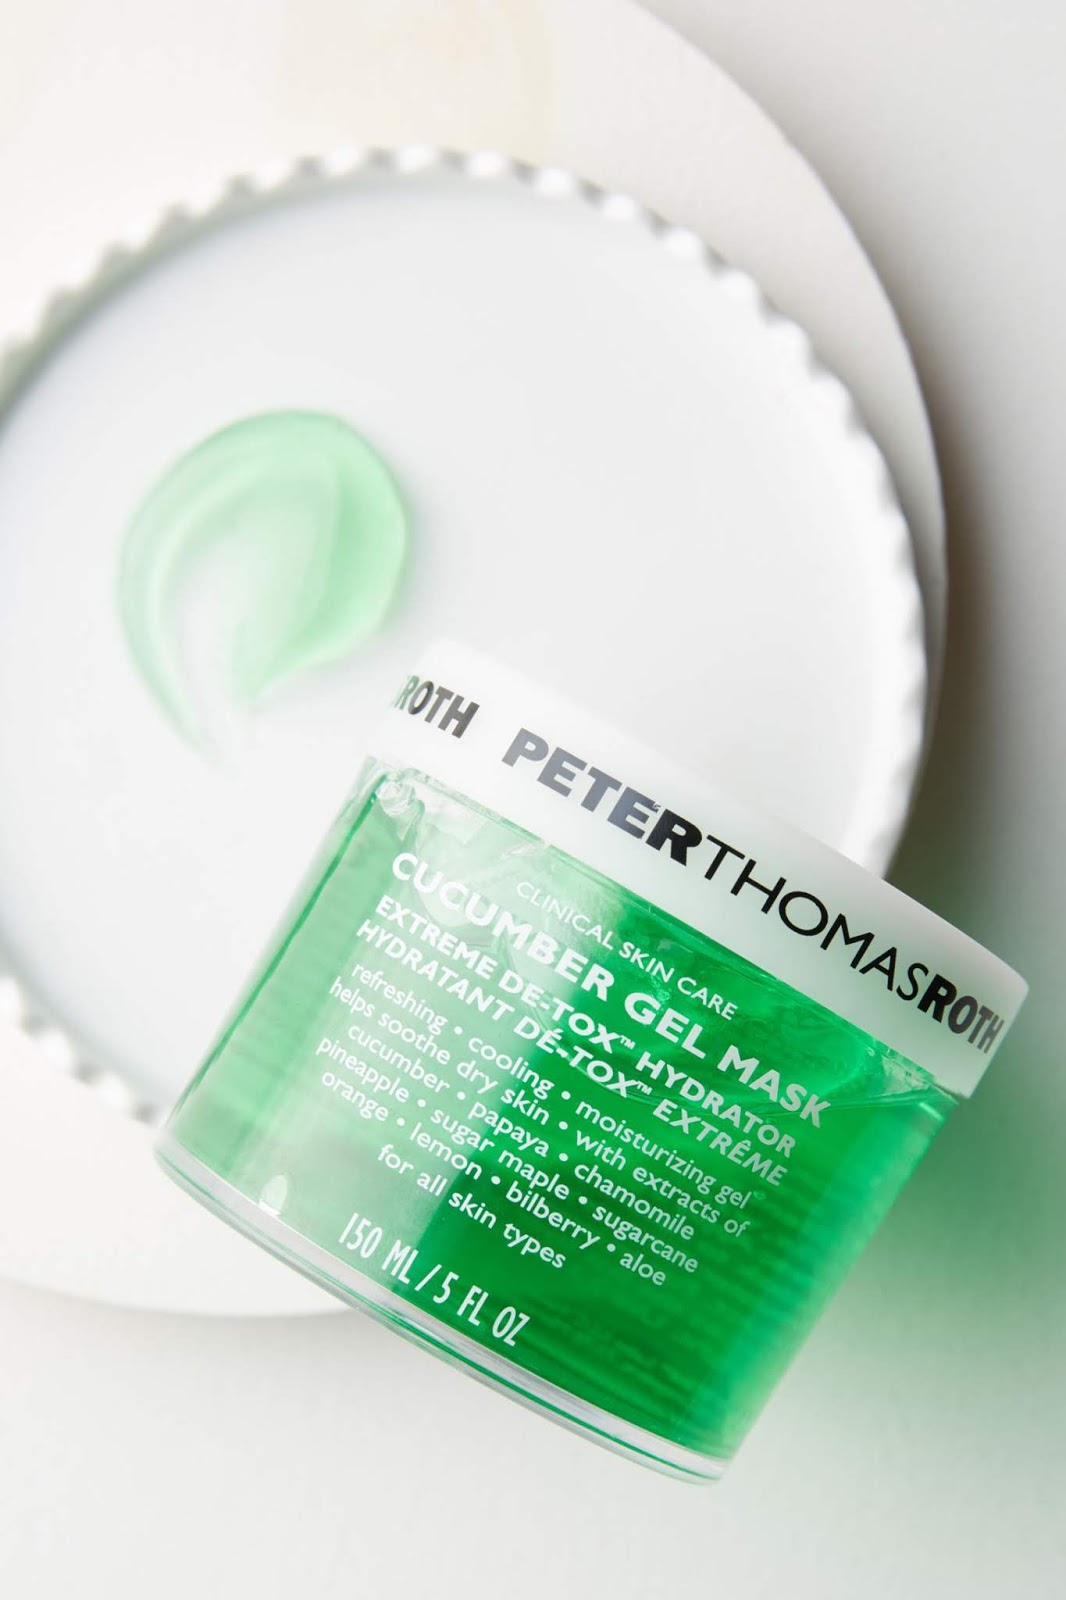 Peter Thomas Roth Cucumber Gel Treatment